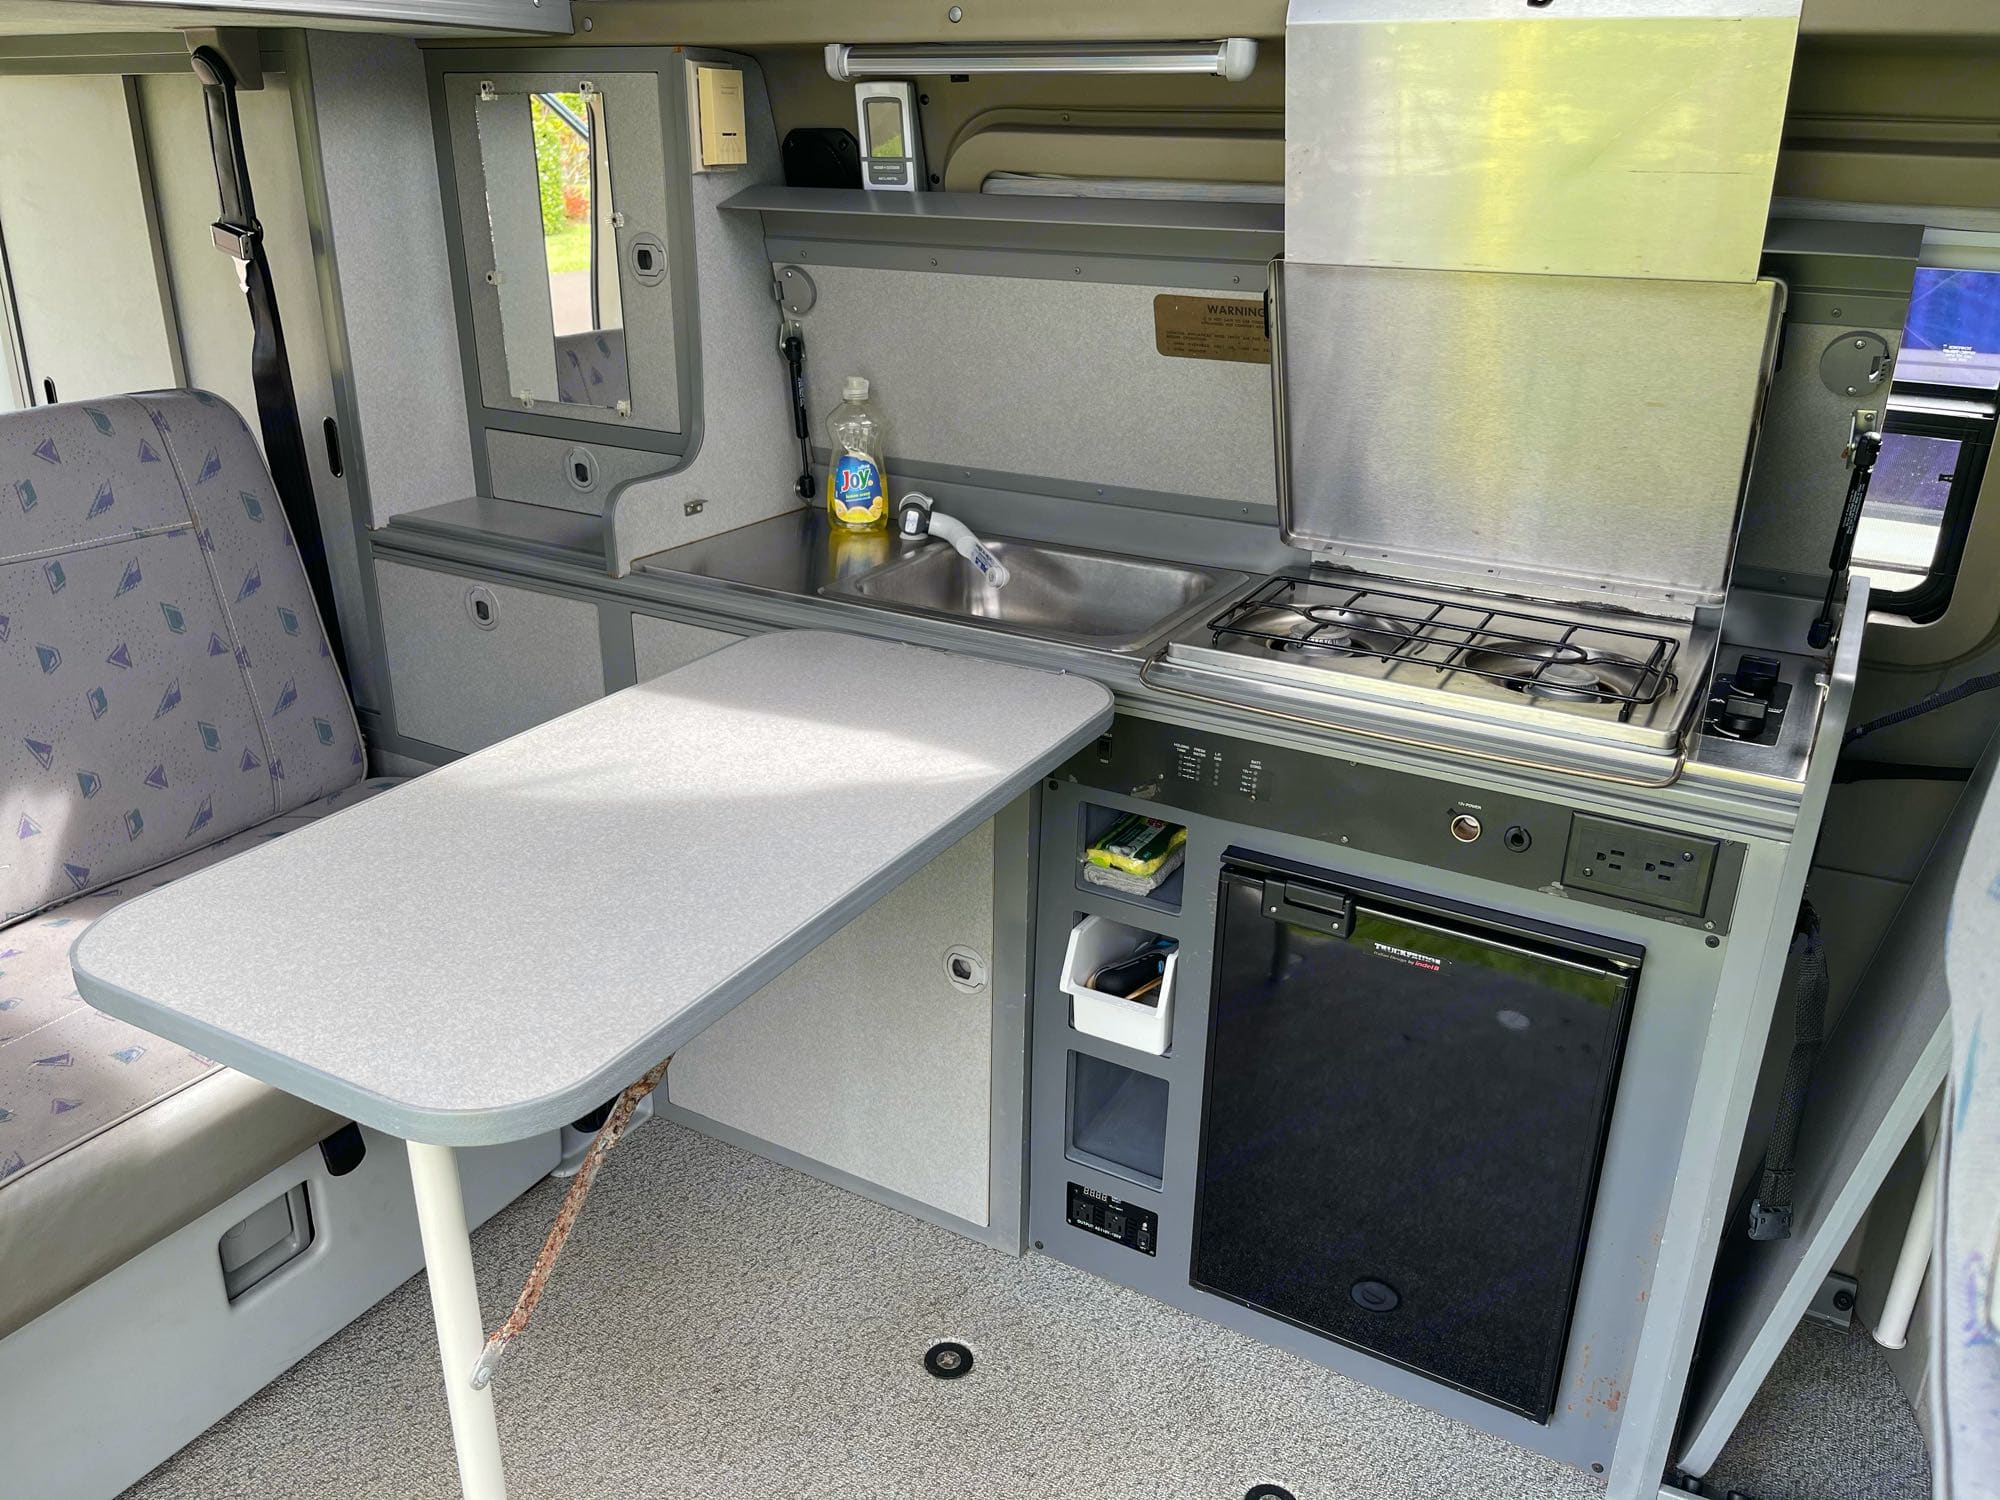 with the two tables to the right of the stove, you can convert your kitchen into a comfy place to eat, the second table fits over the fridge so you can spin the captain's seats around and have a table for four!. Volkswagen Eurovan Full Camper 1997